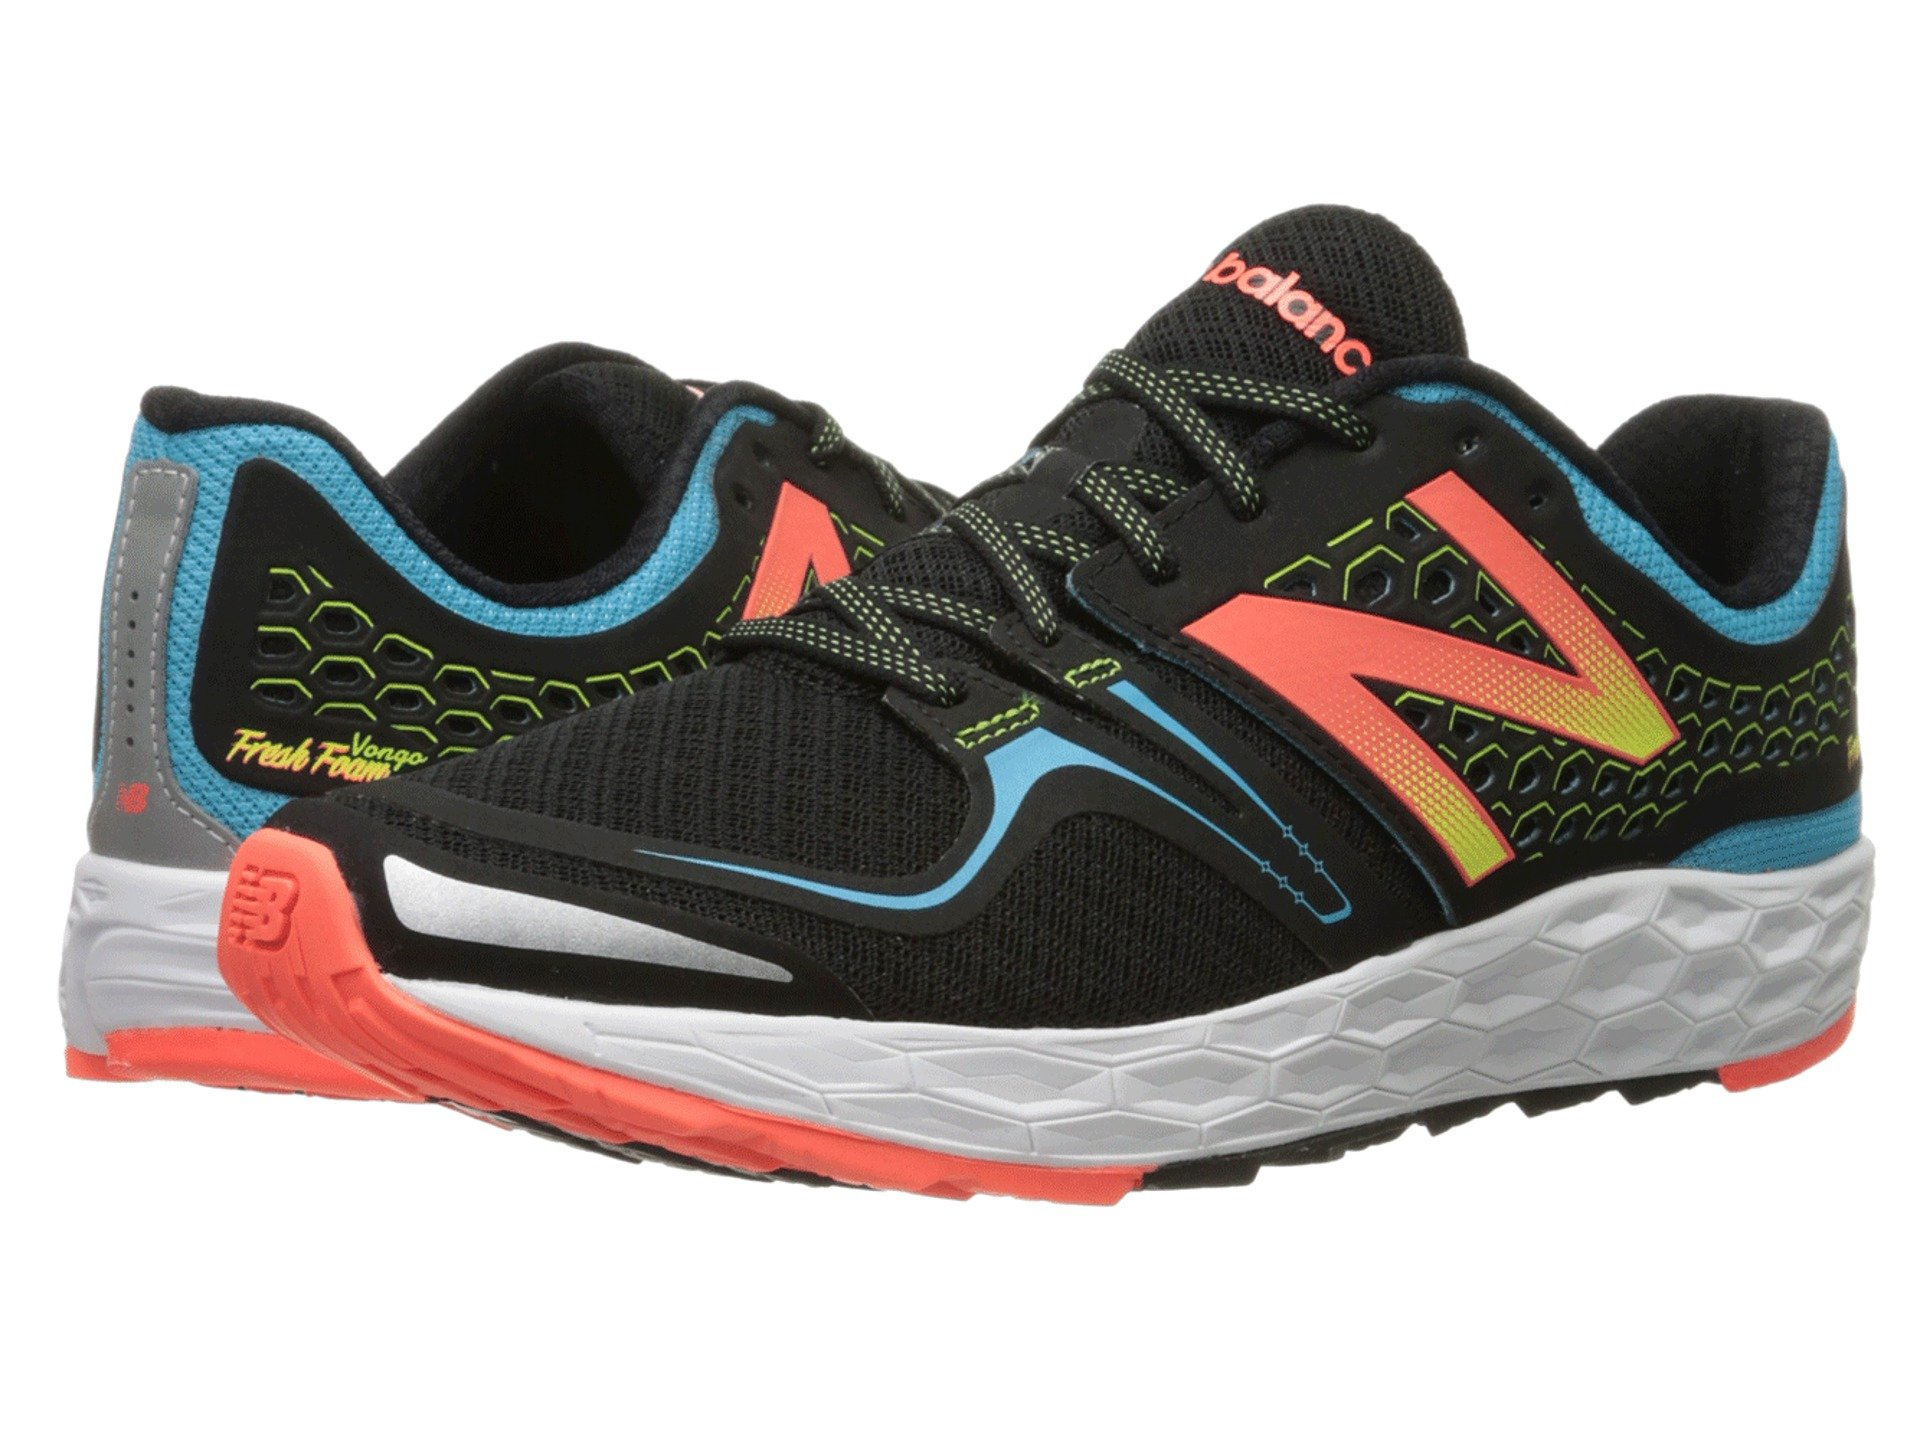 New Balance Fresh Foam Vongo Road Running Shoes Pm